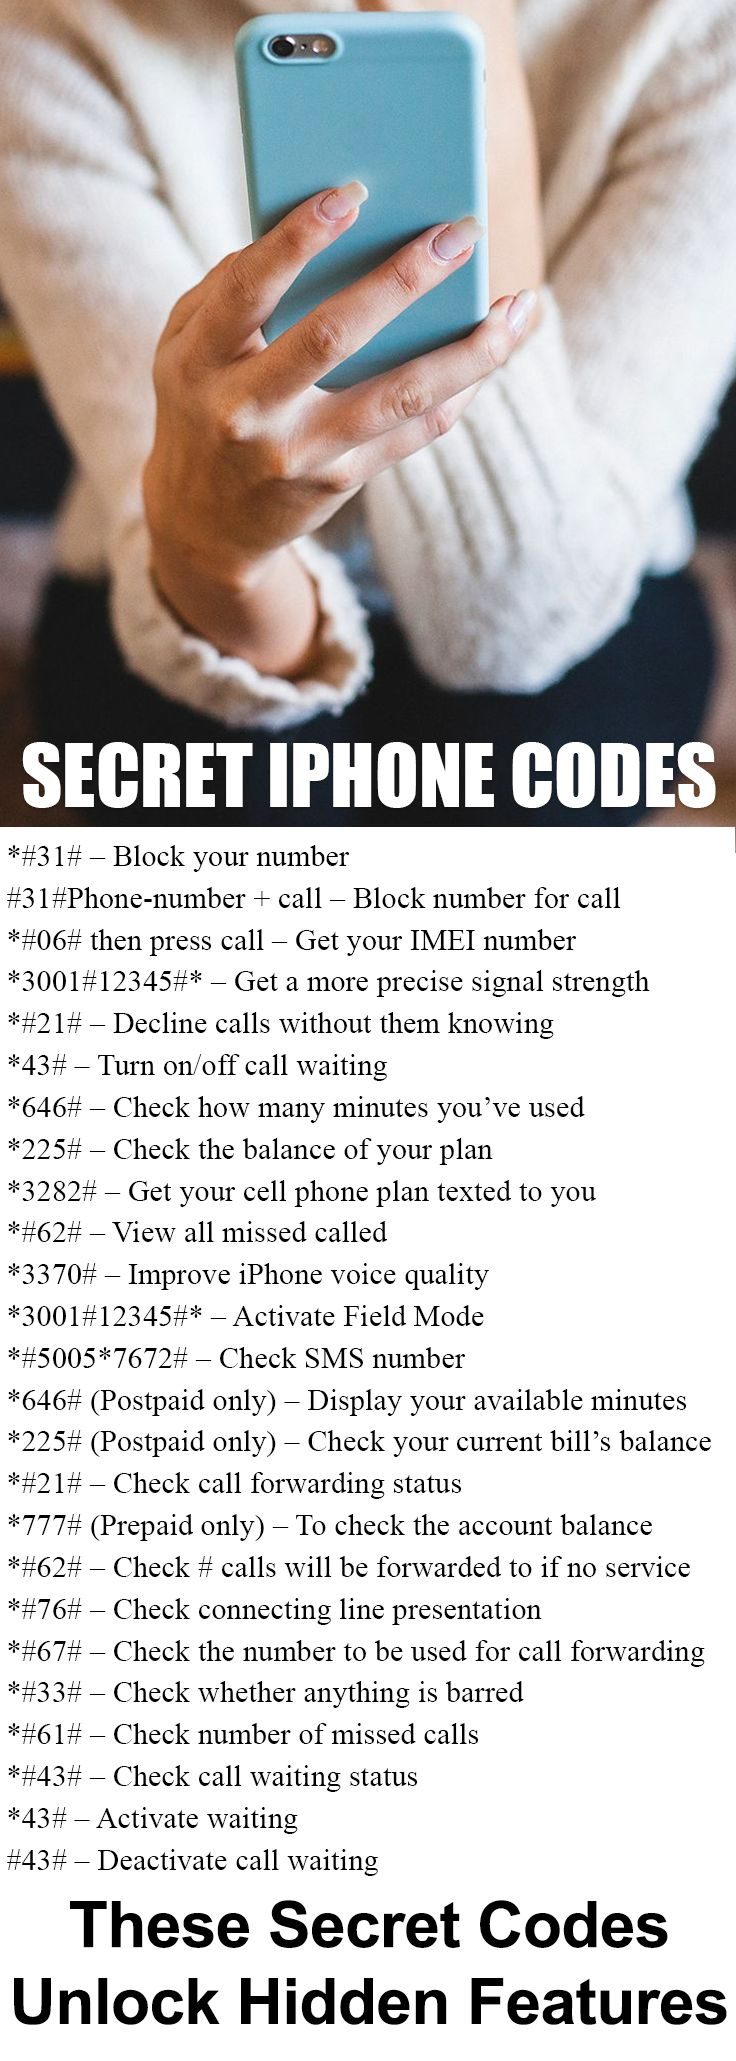 You're going to want to jot these codes down!